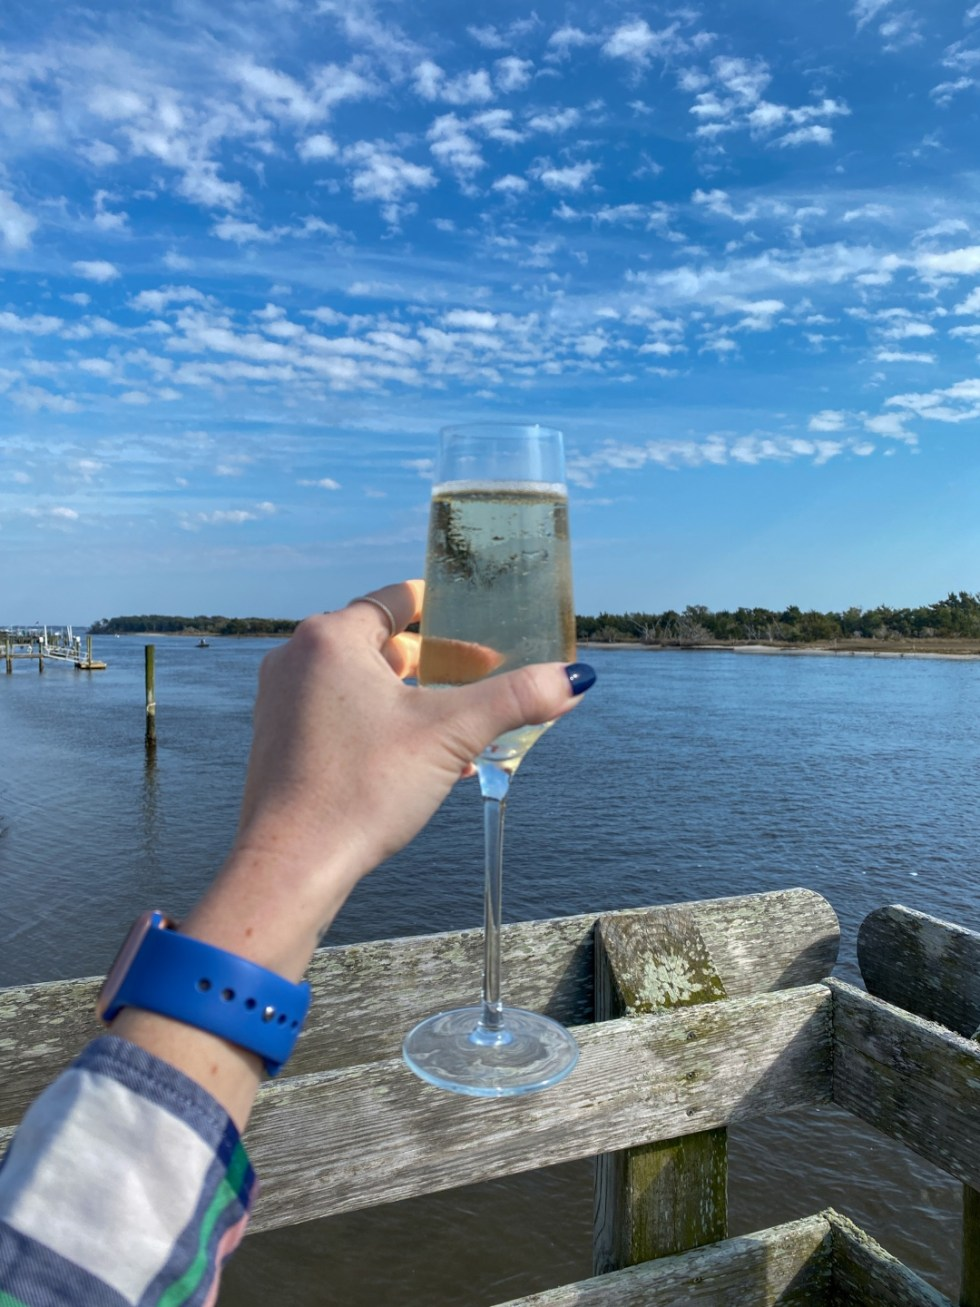 Weekend Travel: The Best Things to Do in Beaufort NC in 48 Hours - I'm Fixin' To - @imfixintoblog |Things to Do in Beaufort NC by popular NC travel blog, I'm Fixin' To: image of a woman holding a glass of white wine.